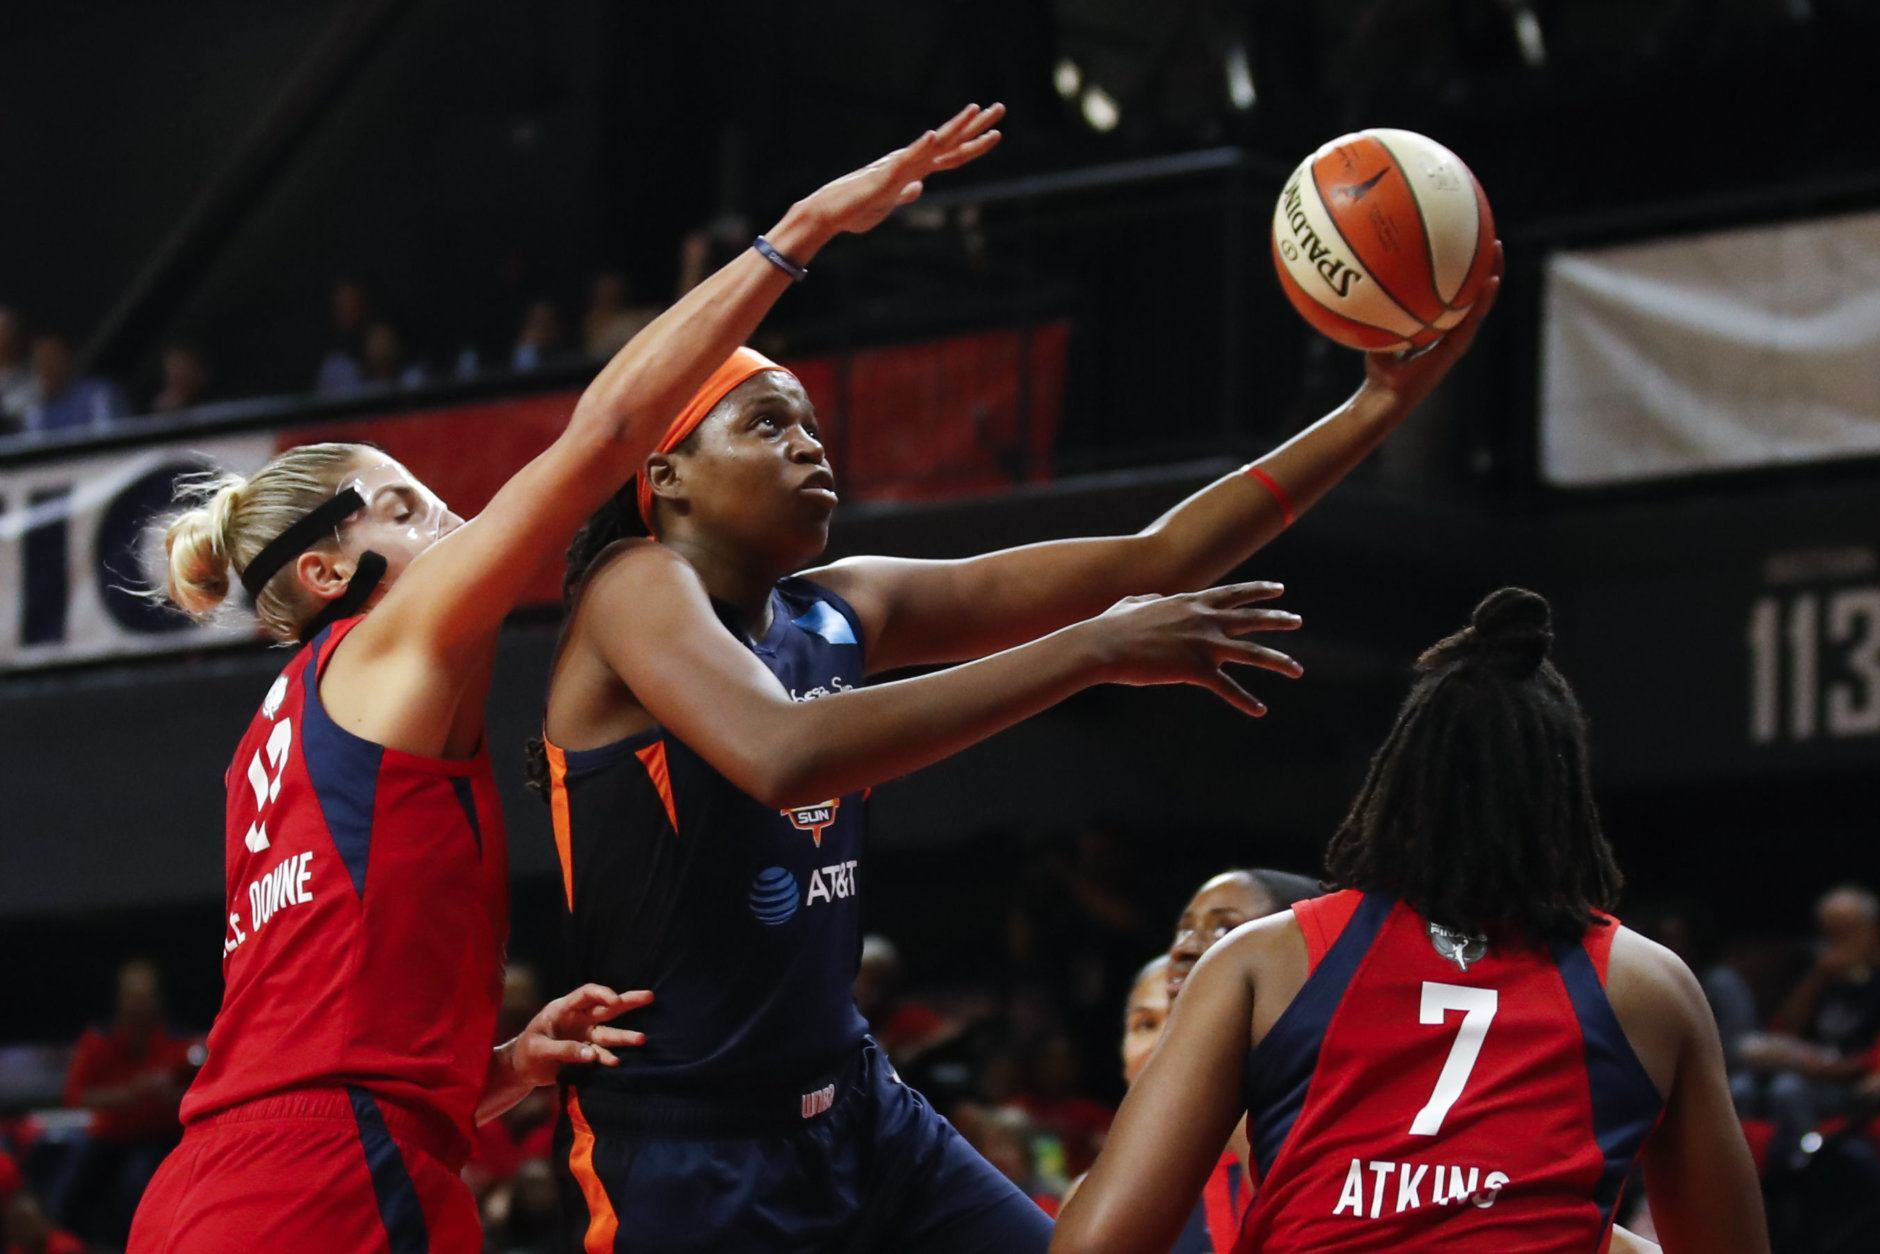 Connecticut Sun forward Jonquel Jones, center, shoots between Washington Mystics forward Elena Delle Donne, left, and guard Ariel Atkins during the first half of Game 5 of basketball's WNBA Finals, Thursday, Oct. 10, 2019, in Washington. (AP Photo/Alex Brandon)